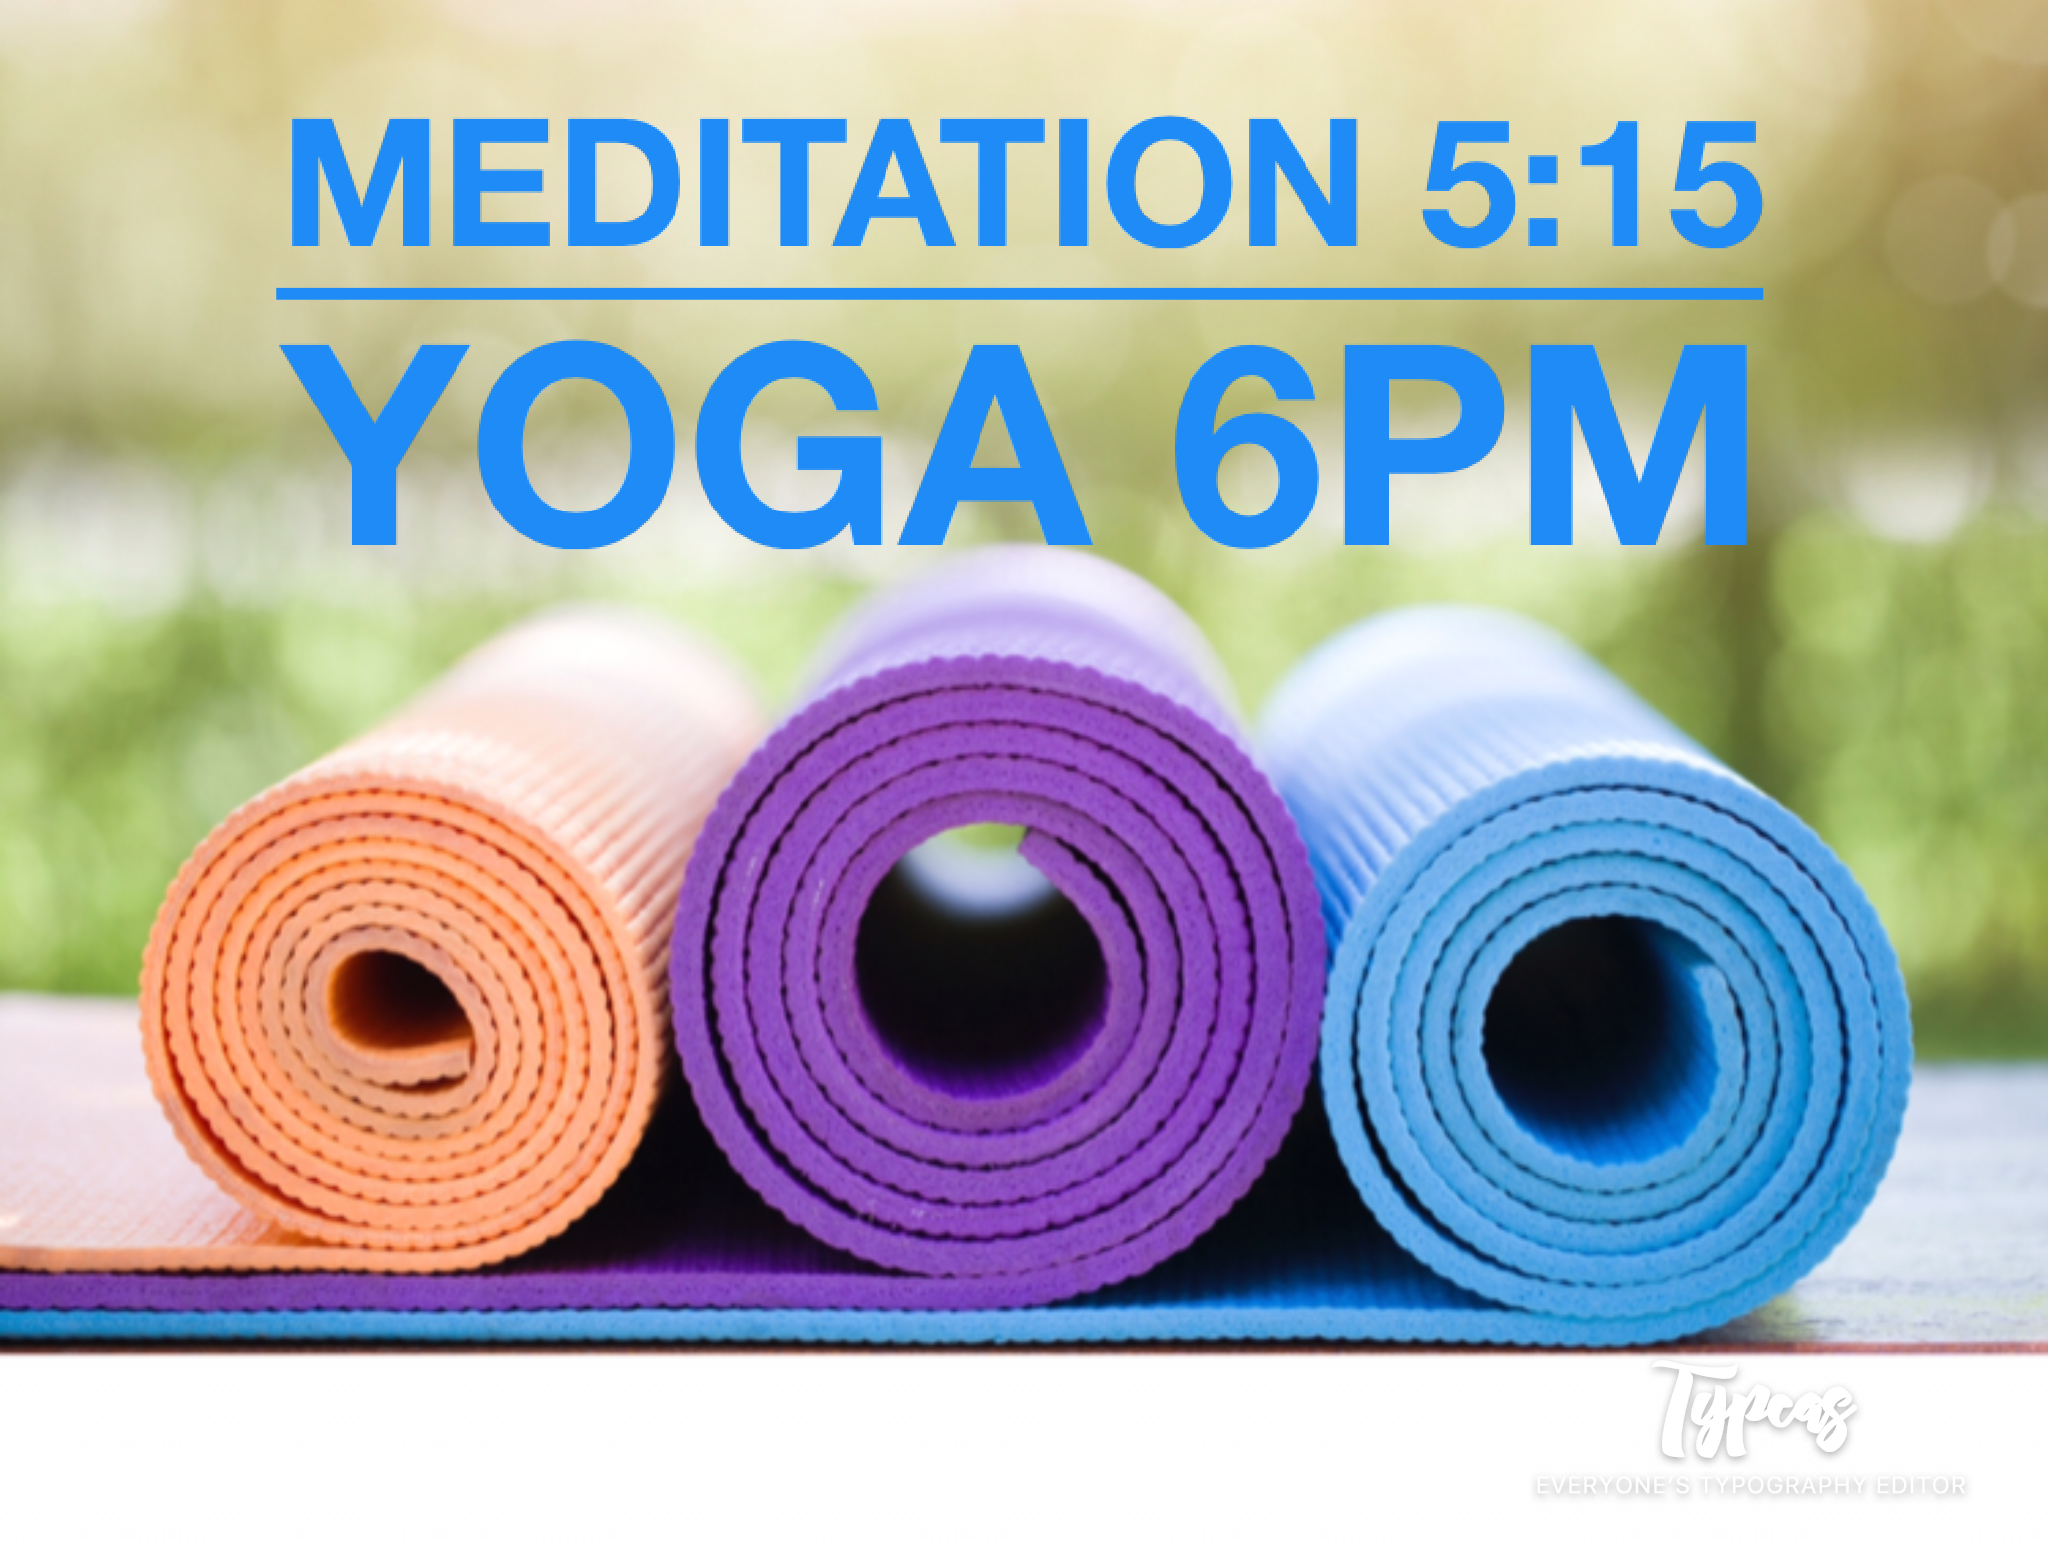 Every Wednesday is  Zensday  at the Peace Museum! We offer free meditation at 5:15, followed by yoga with Kaye at 6pm. Bring your reusable water bottle and mat or borrow one of ours.